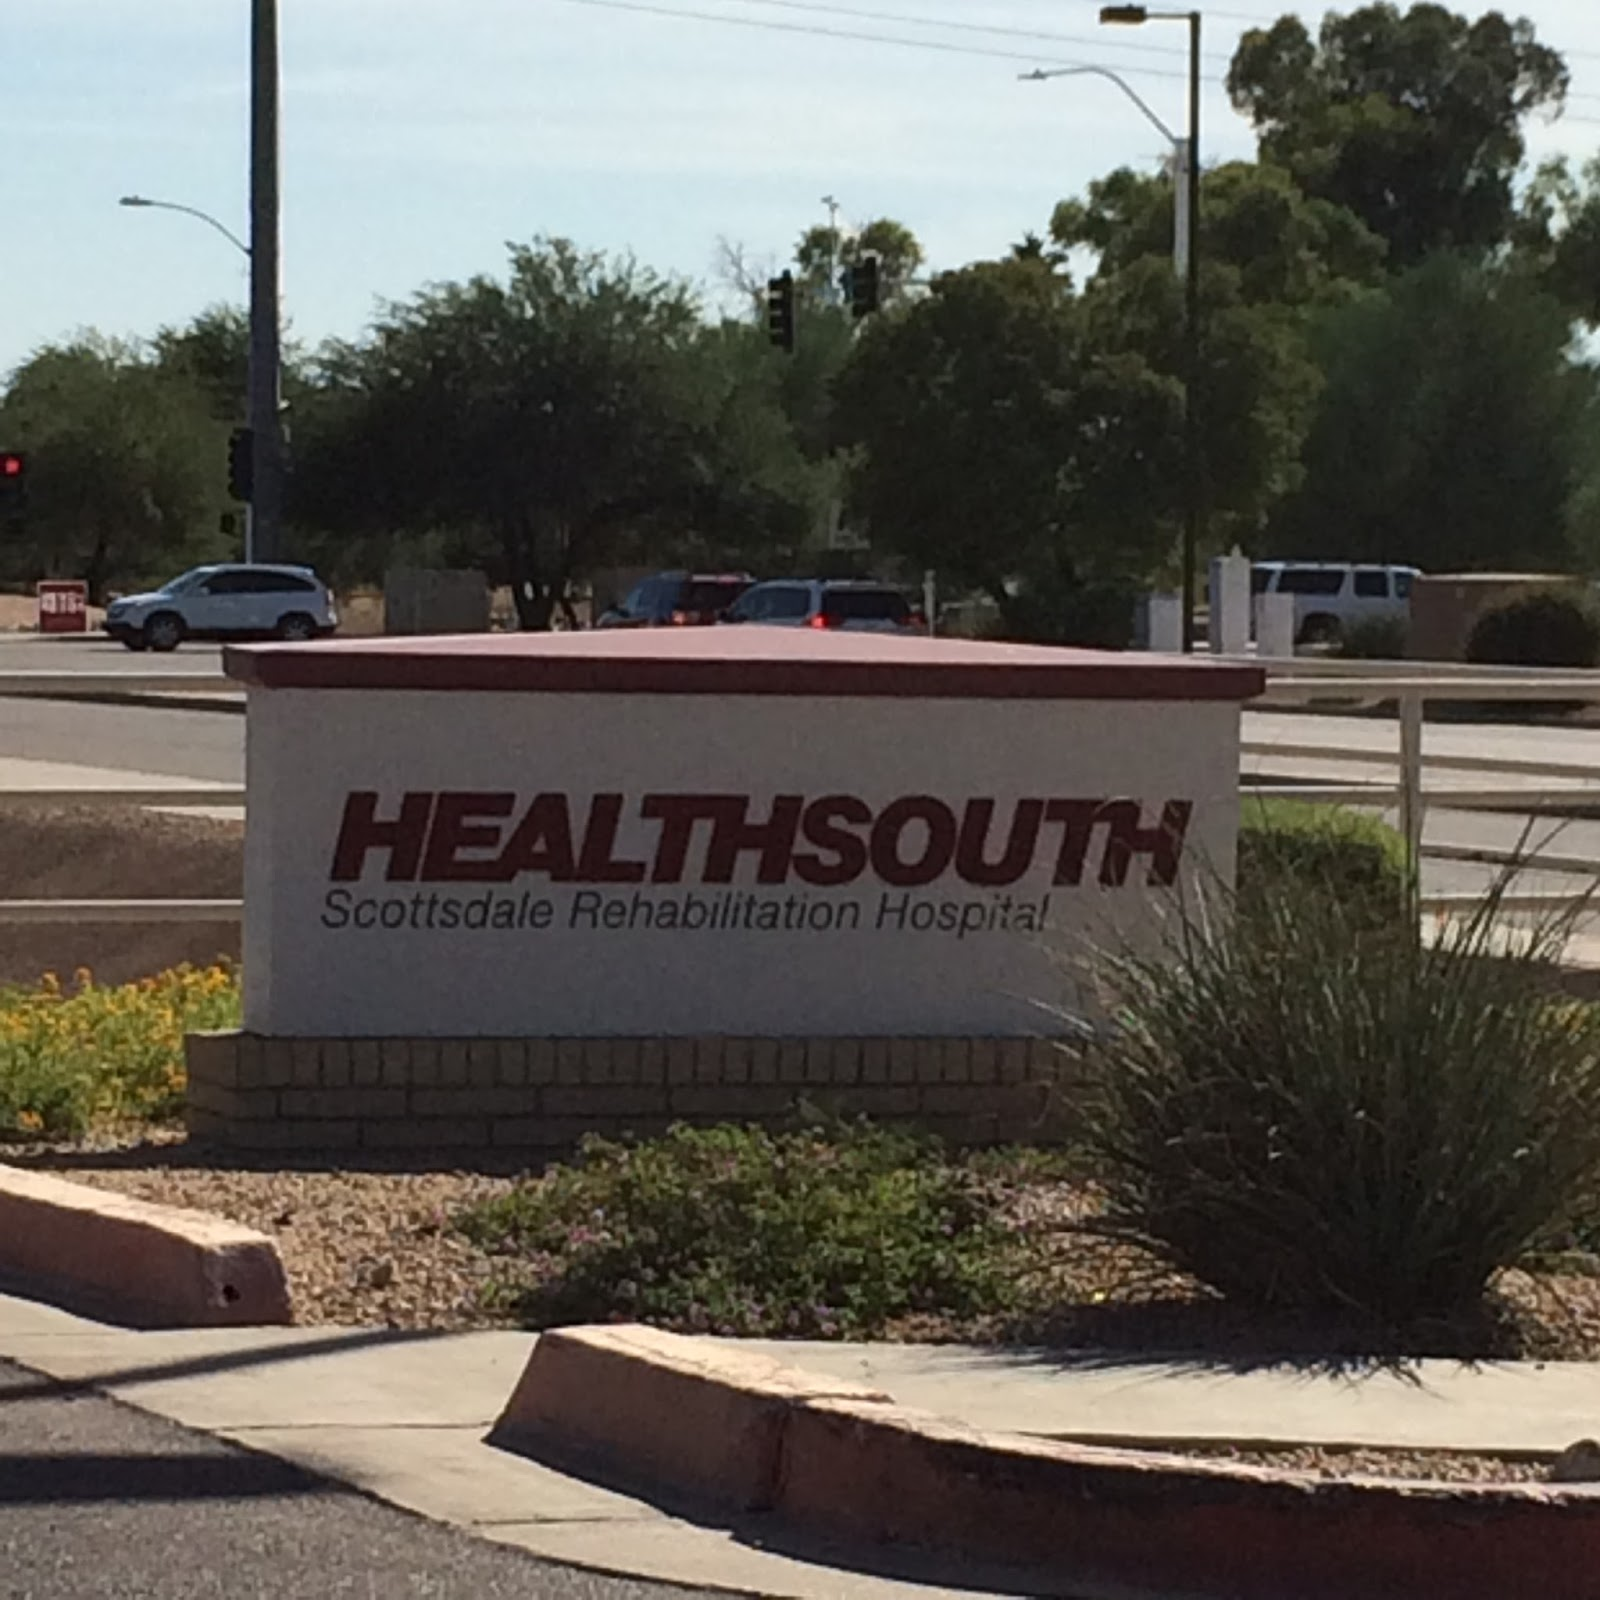 Health south physical therapy - Healthsouth Rehabilitation Scottsdale Is A Free Standing Inpatient Facility For Patients Requiring Intensive Rehabilitation From Multiple Disciplines For